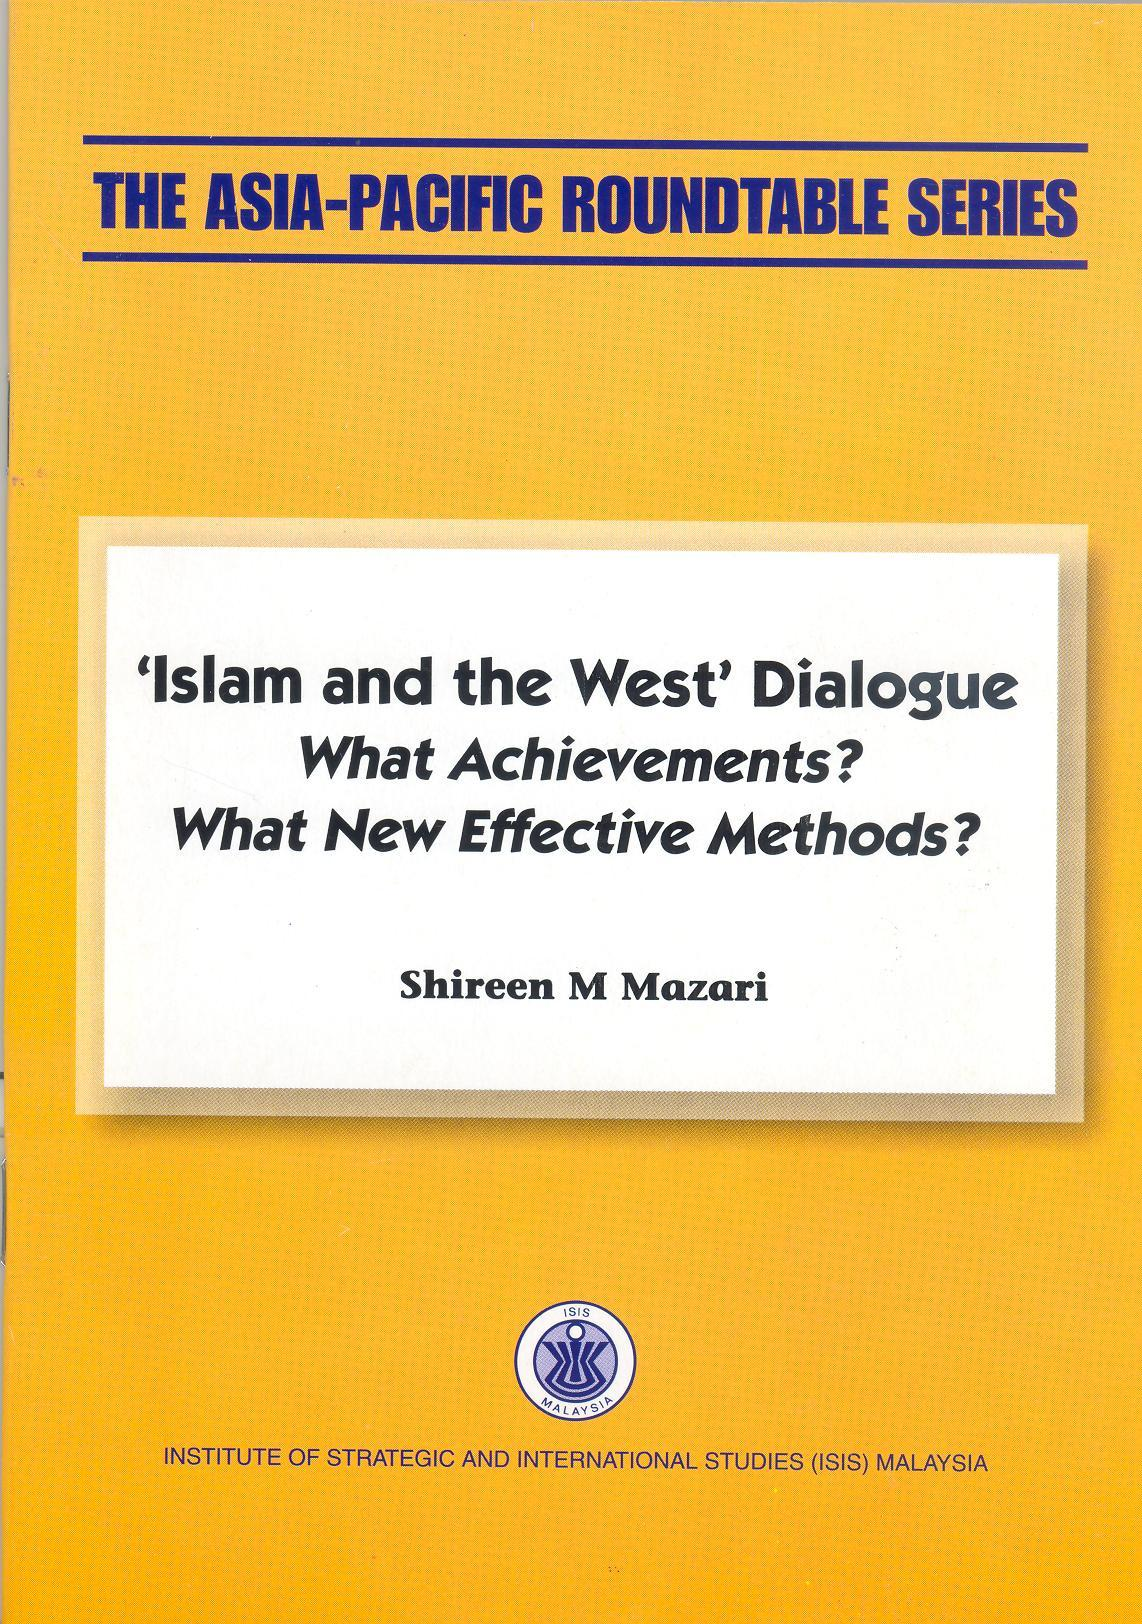 ISLAM AND THE WEST DIALOGUE